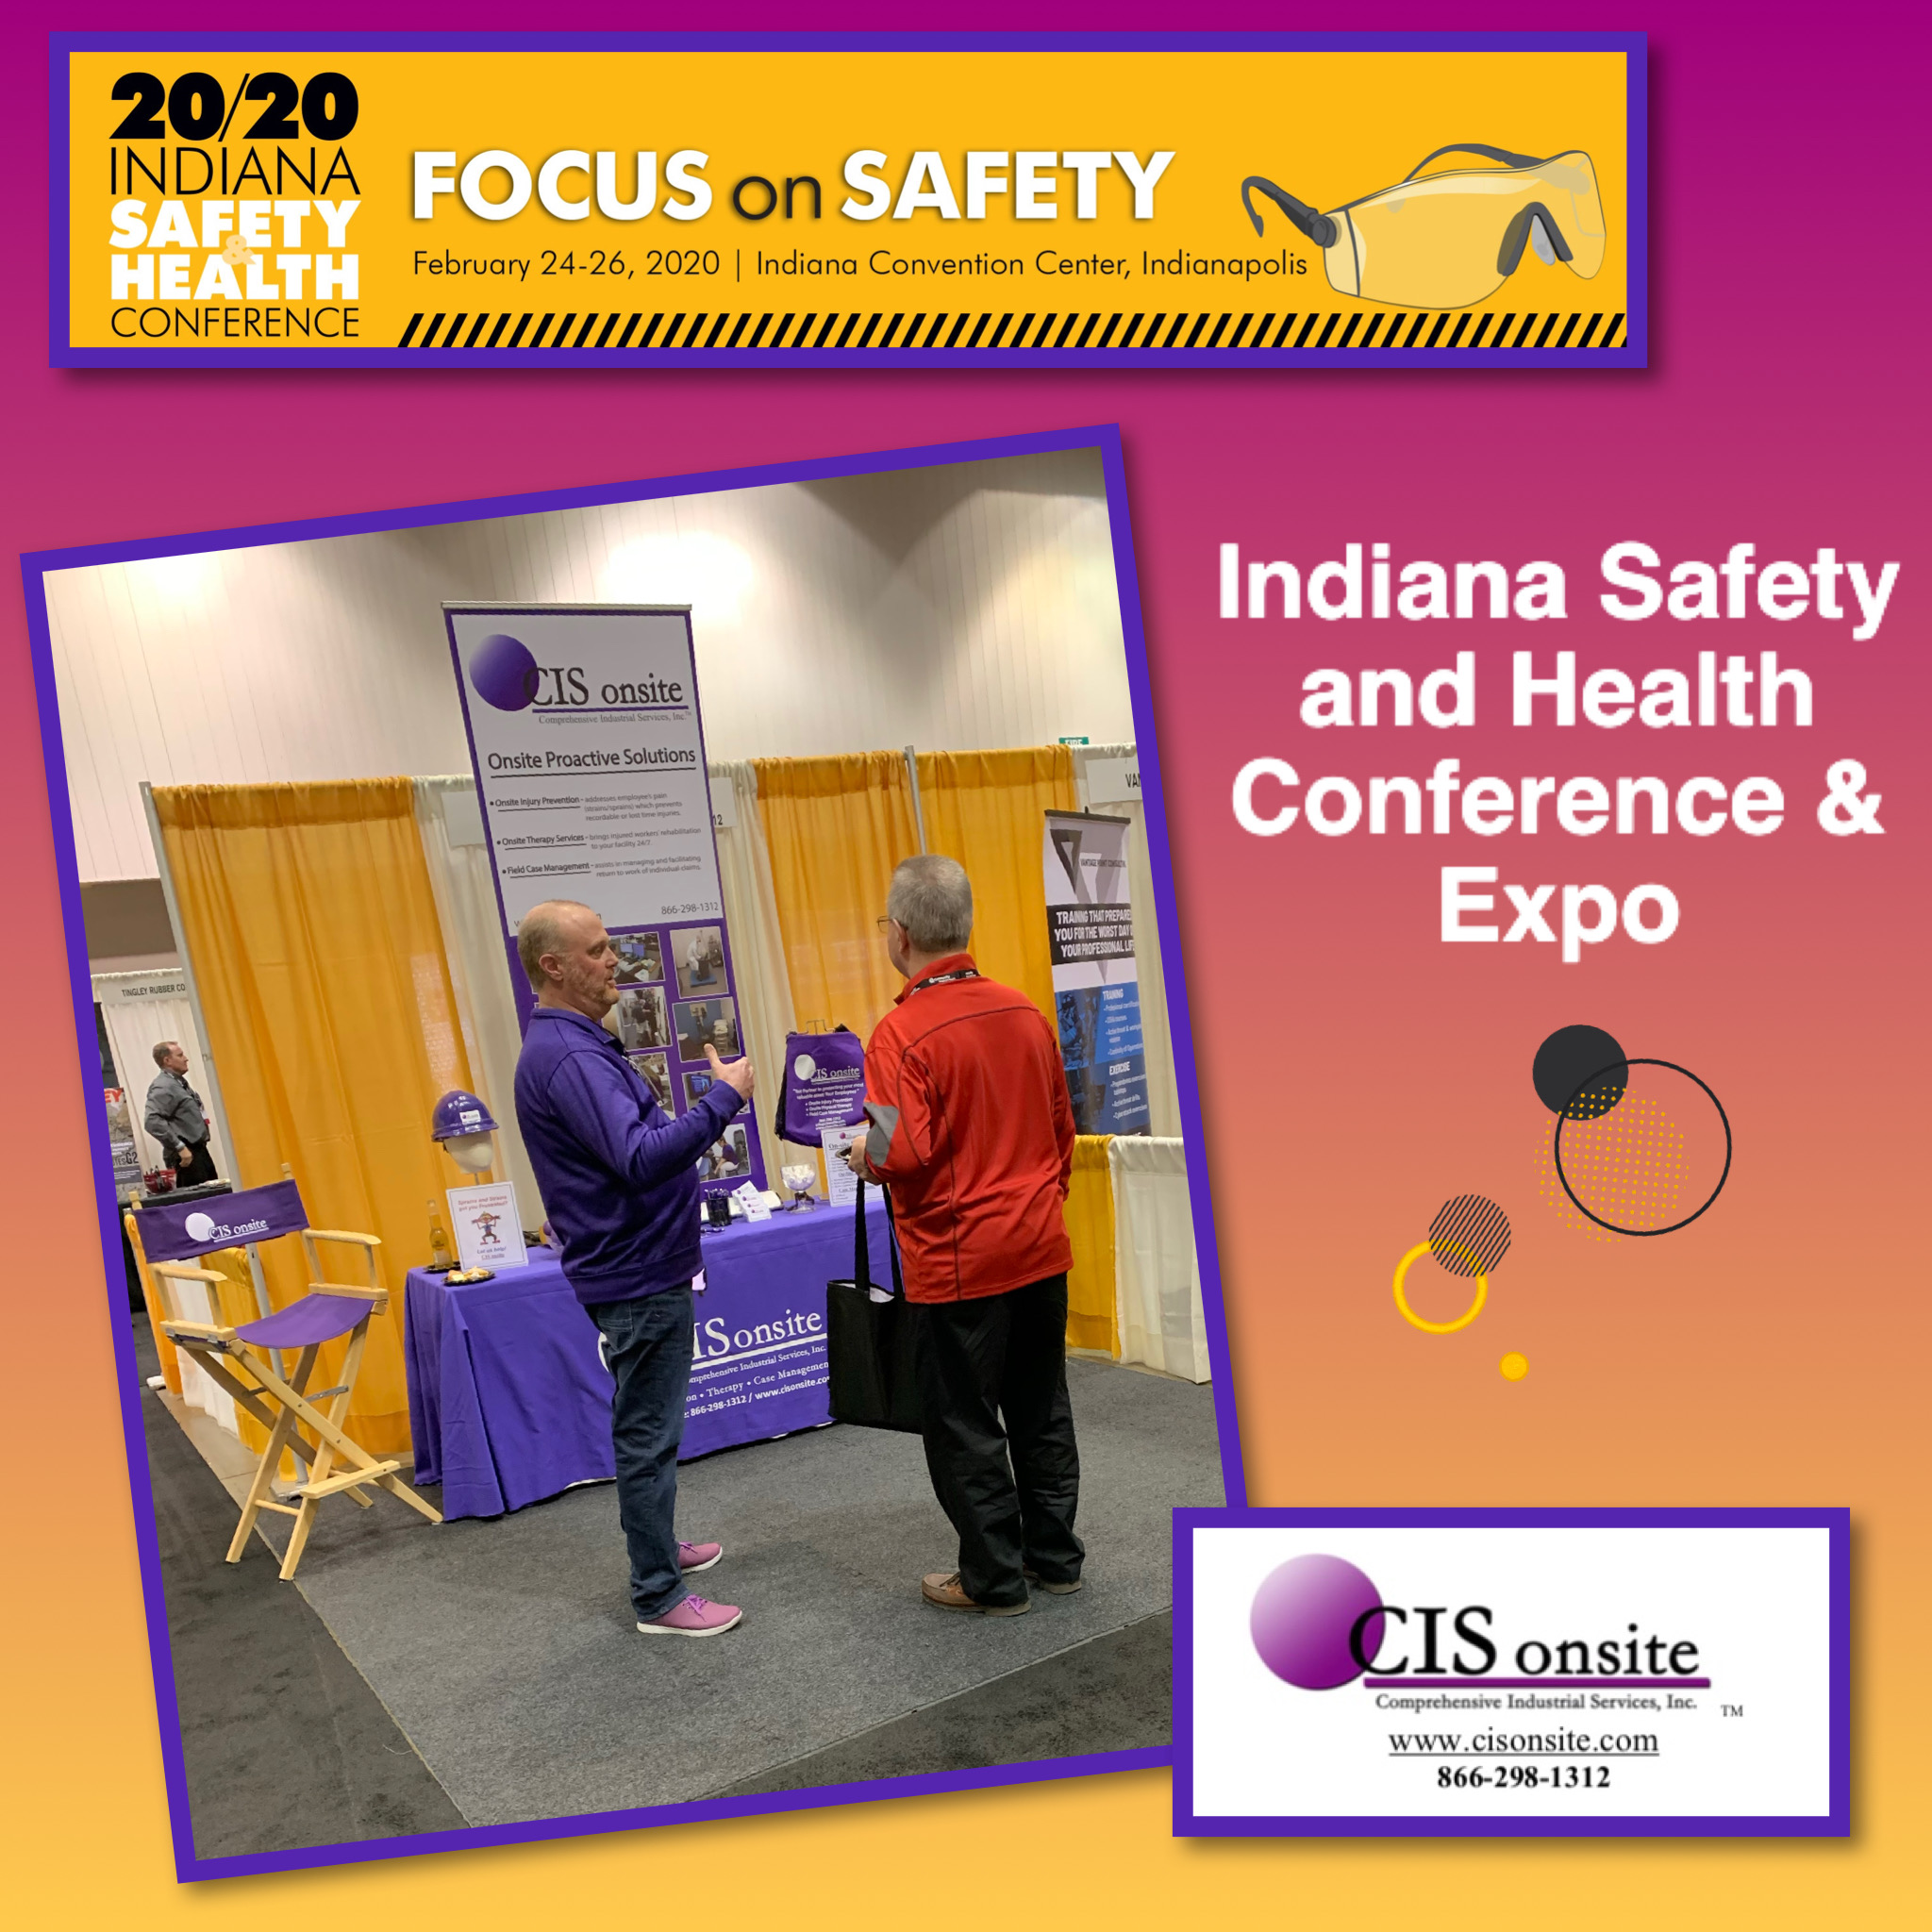 Indiana Safety and Health Conference & Expo, Indianapolis IN. 2020